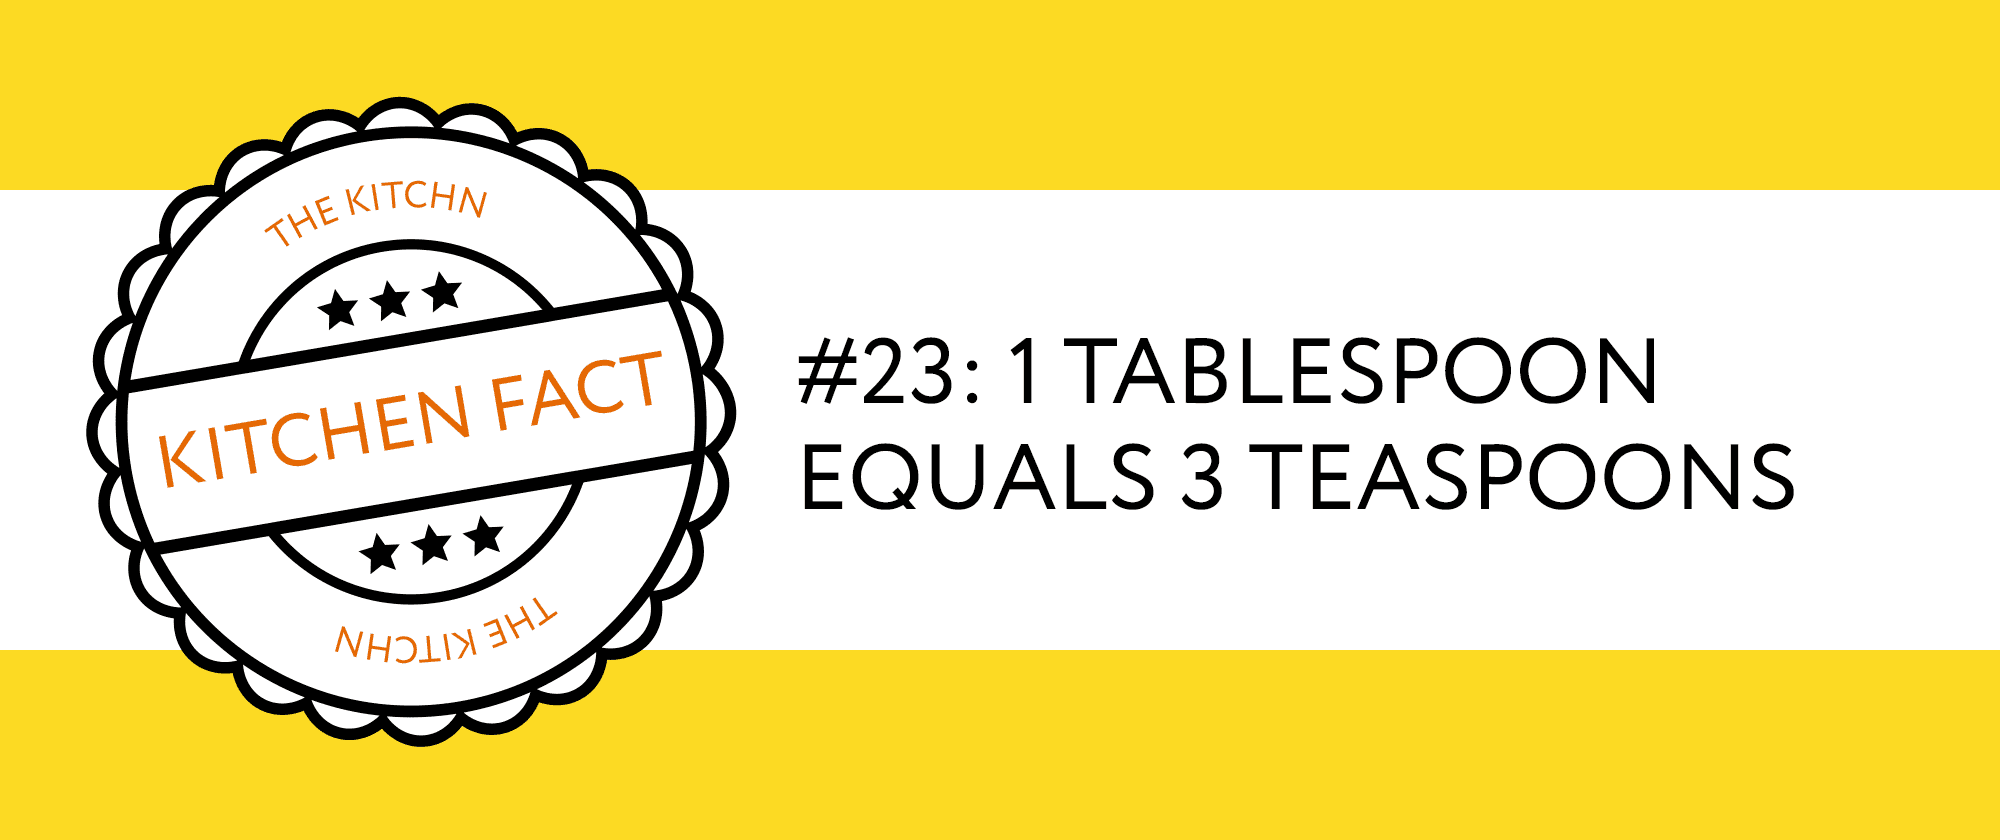 Kitchen Fact: 1 tablespoon equals 3 teaspons